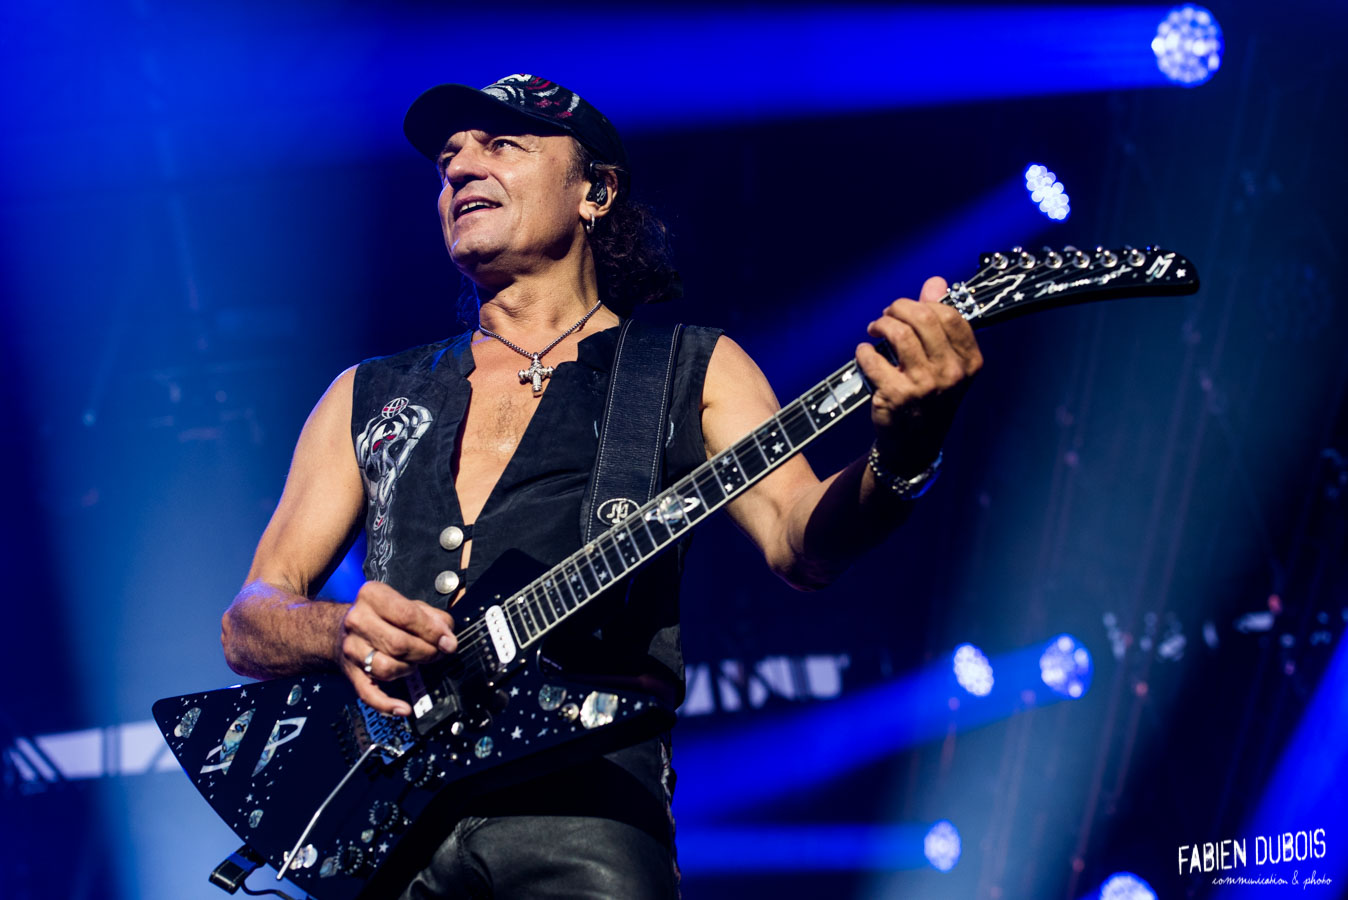 Photo Scorpions Crazy World Tour Festival Printemps de Pérouges Saint Vulbas 2018